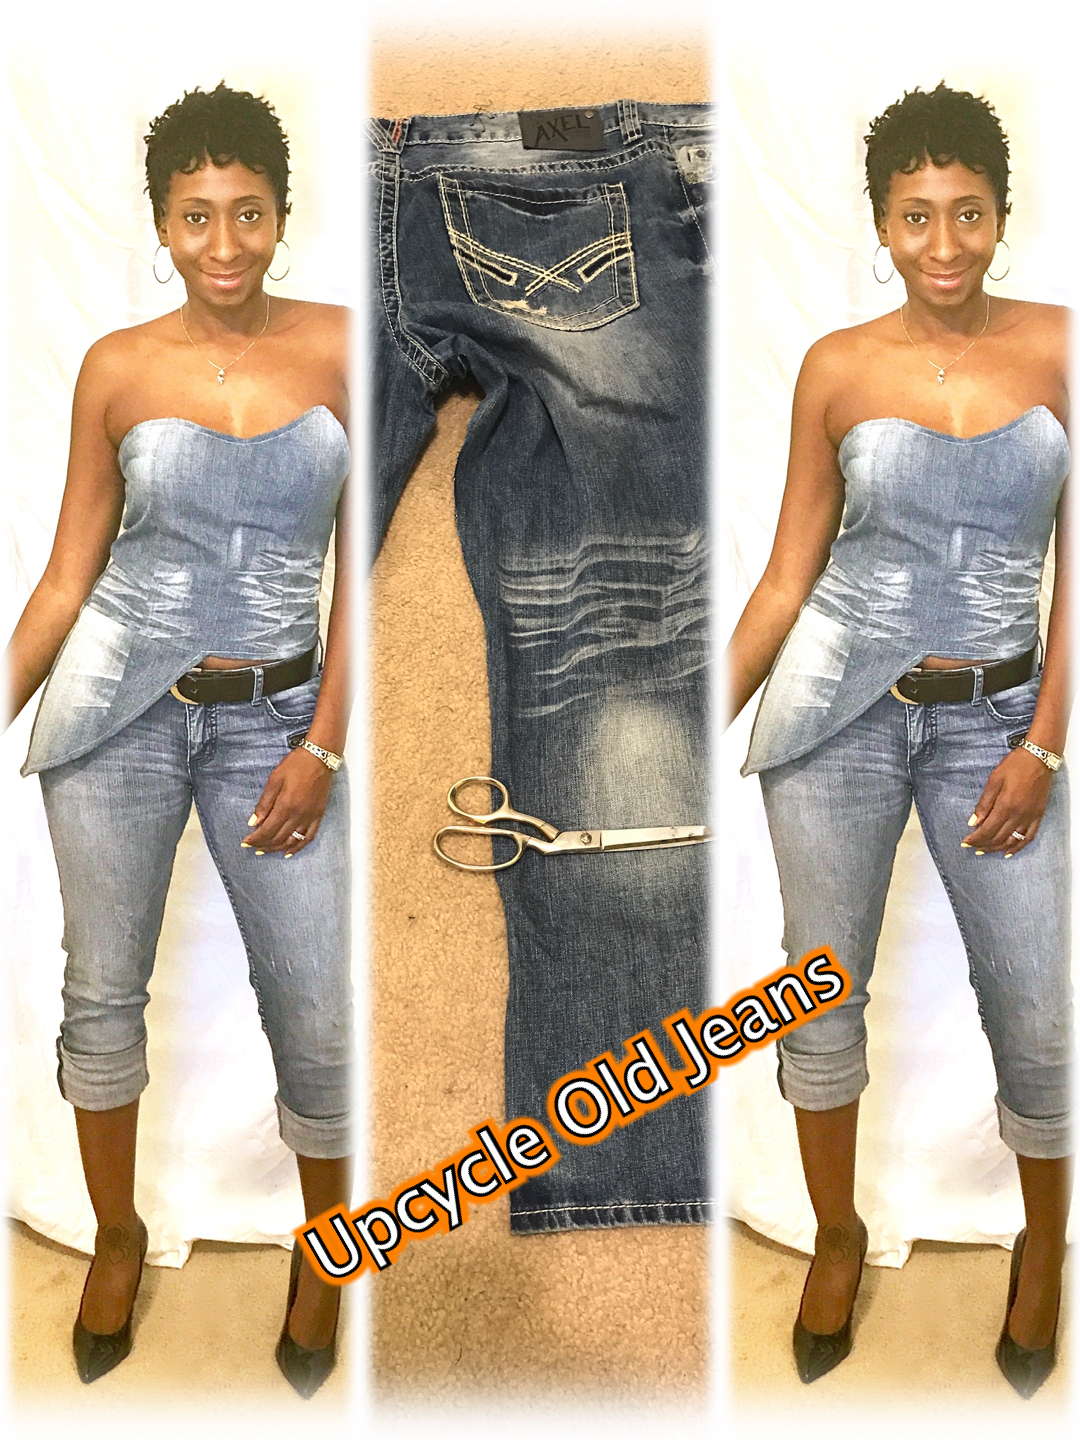 How to Upcycle Old Jeans